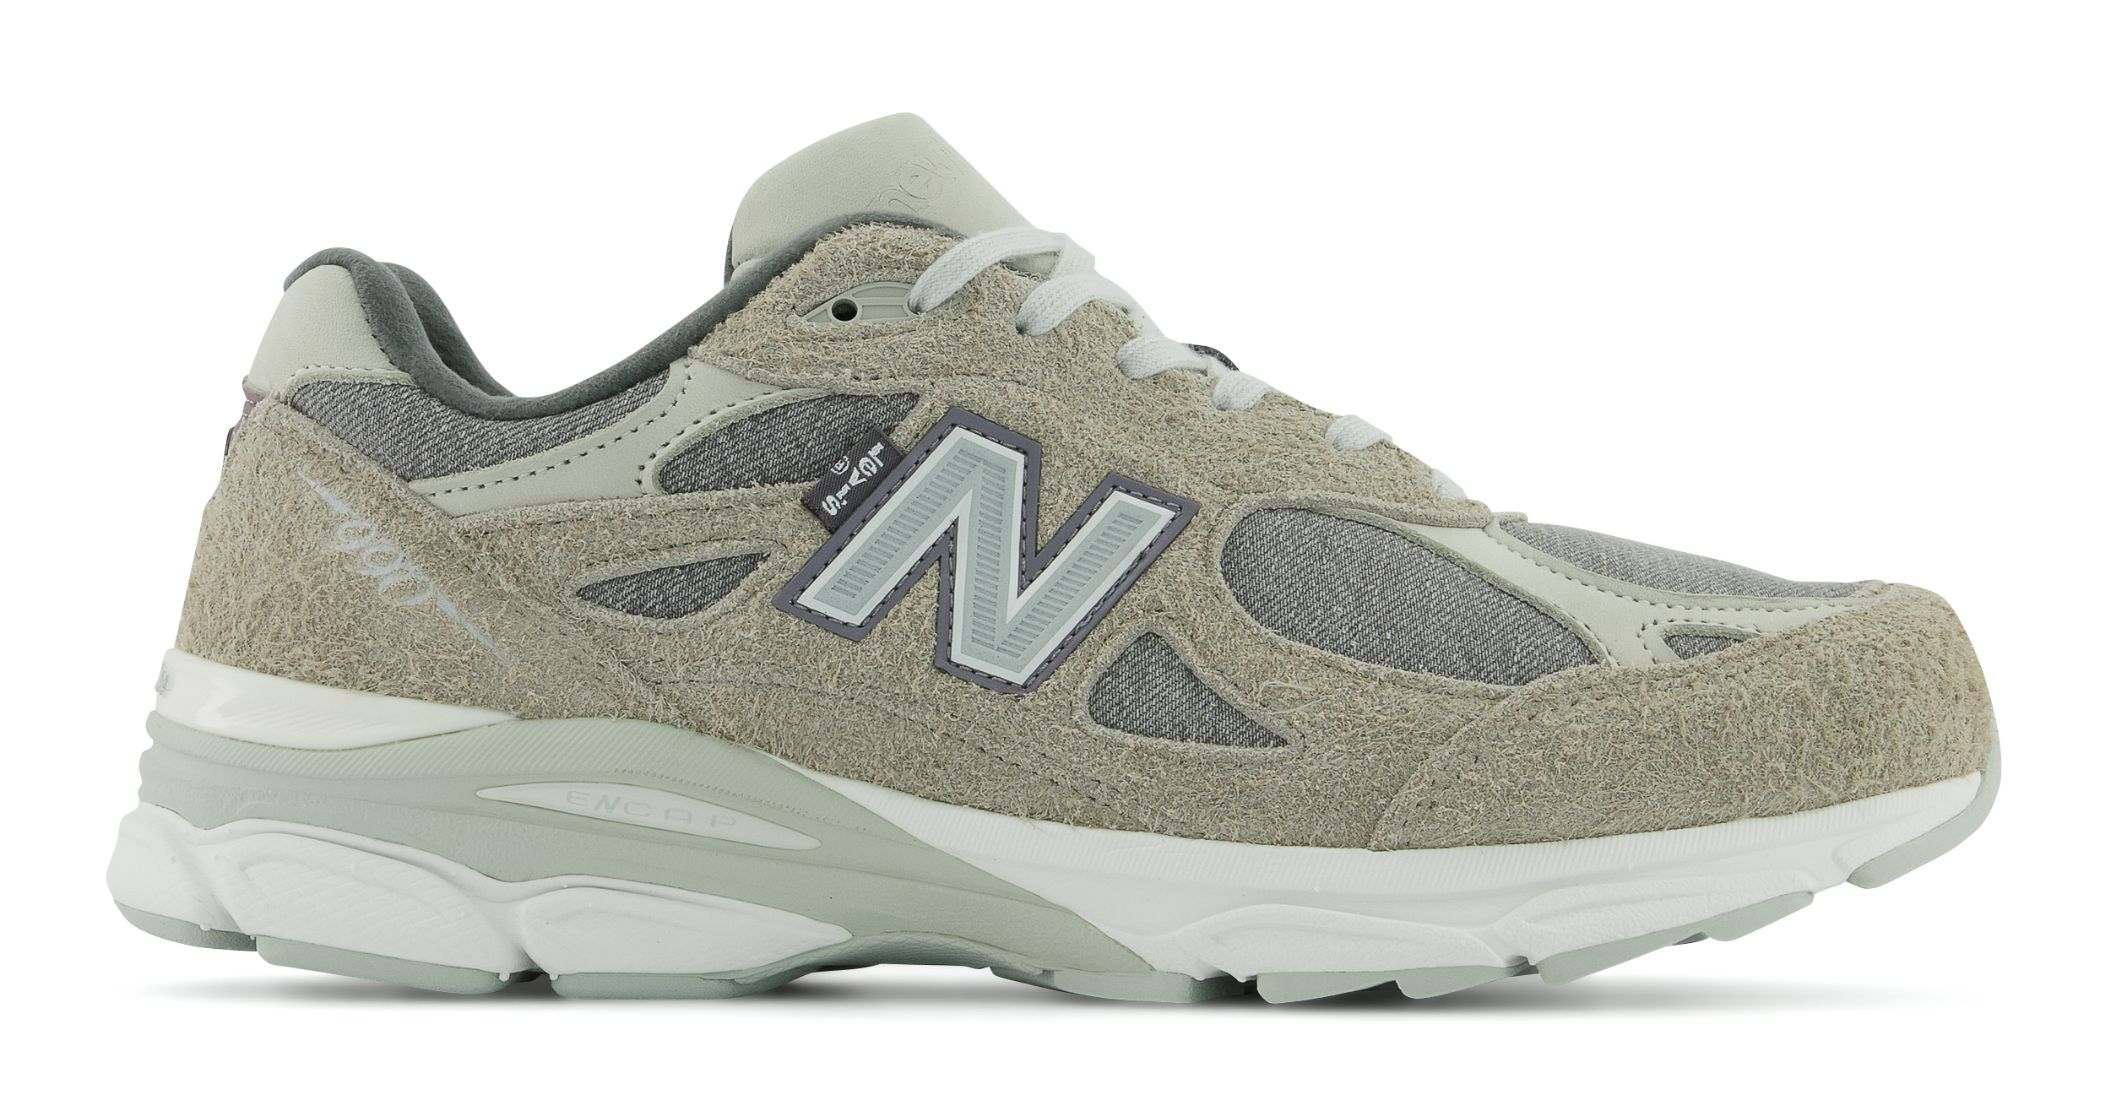 「LEVI'S® X New Balance」Made in U.S.A.【990v3】コラボレーションモデル